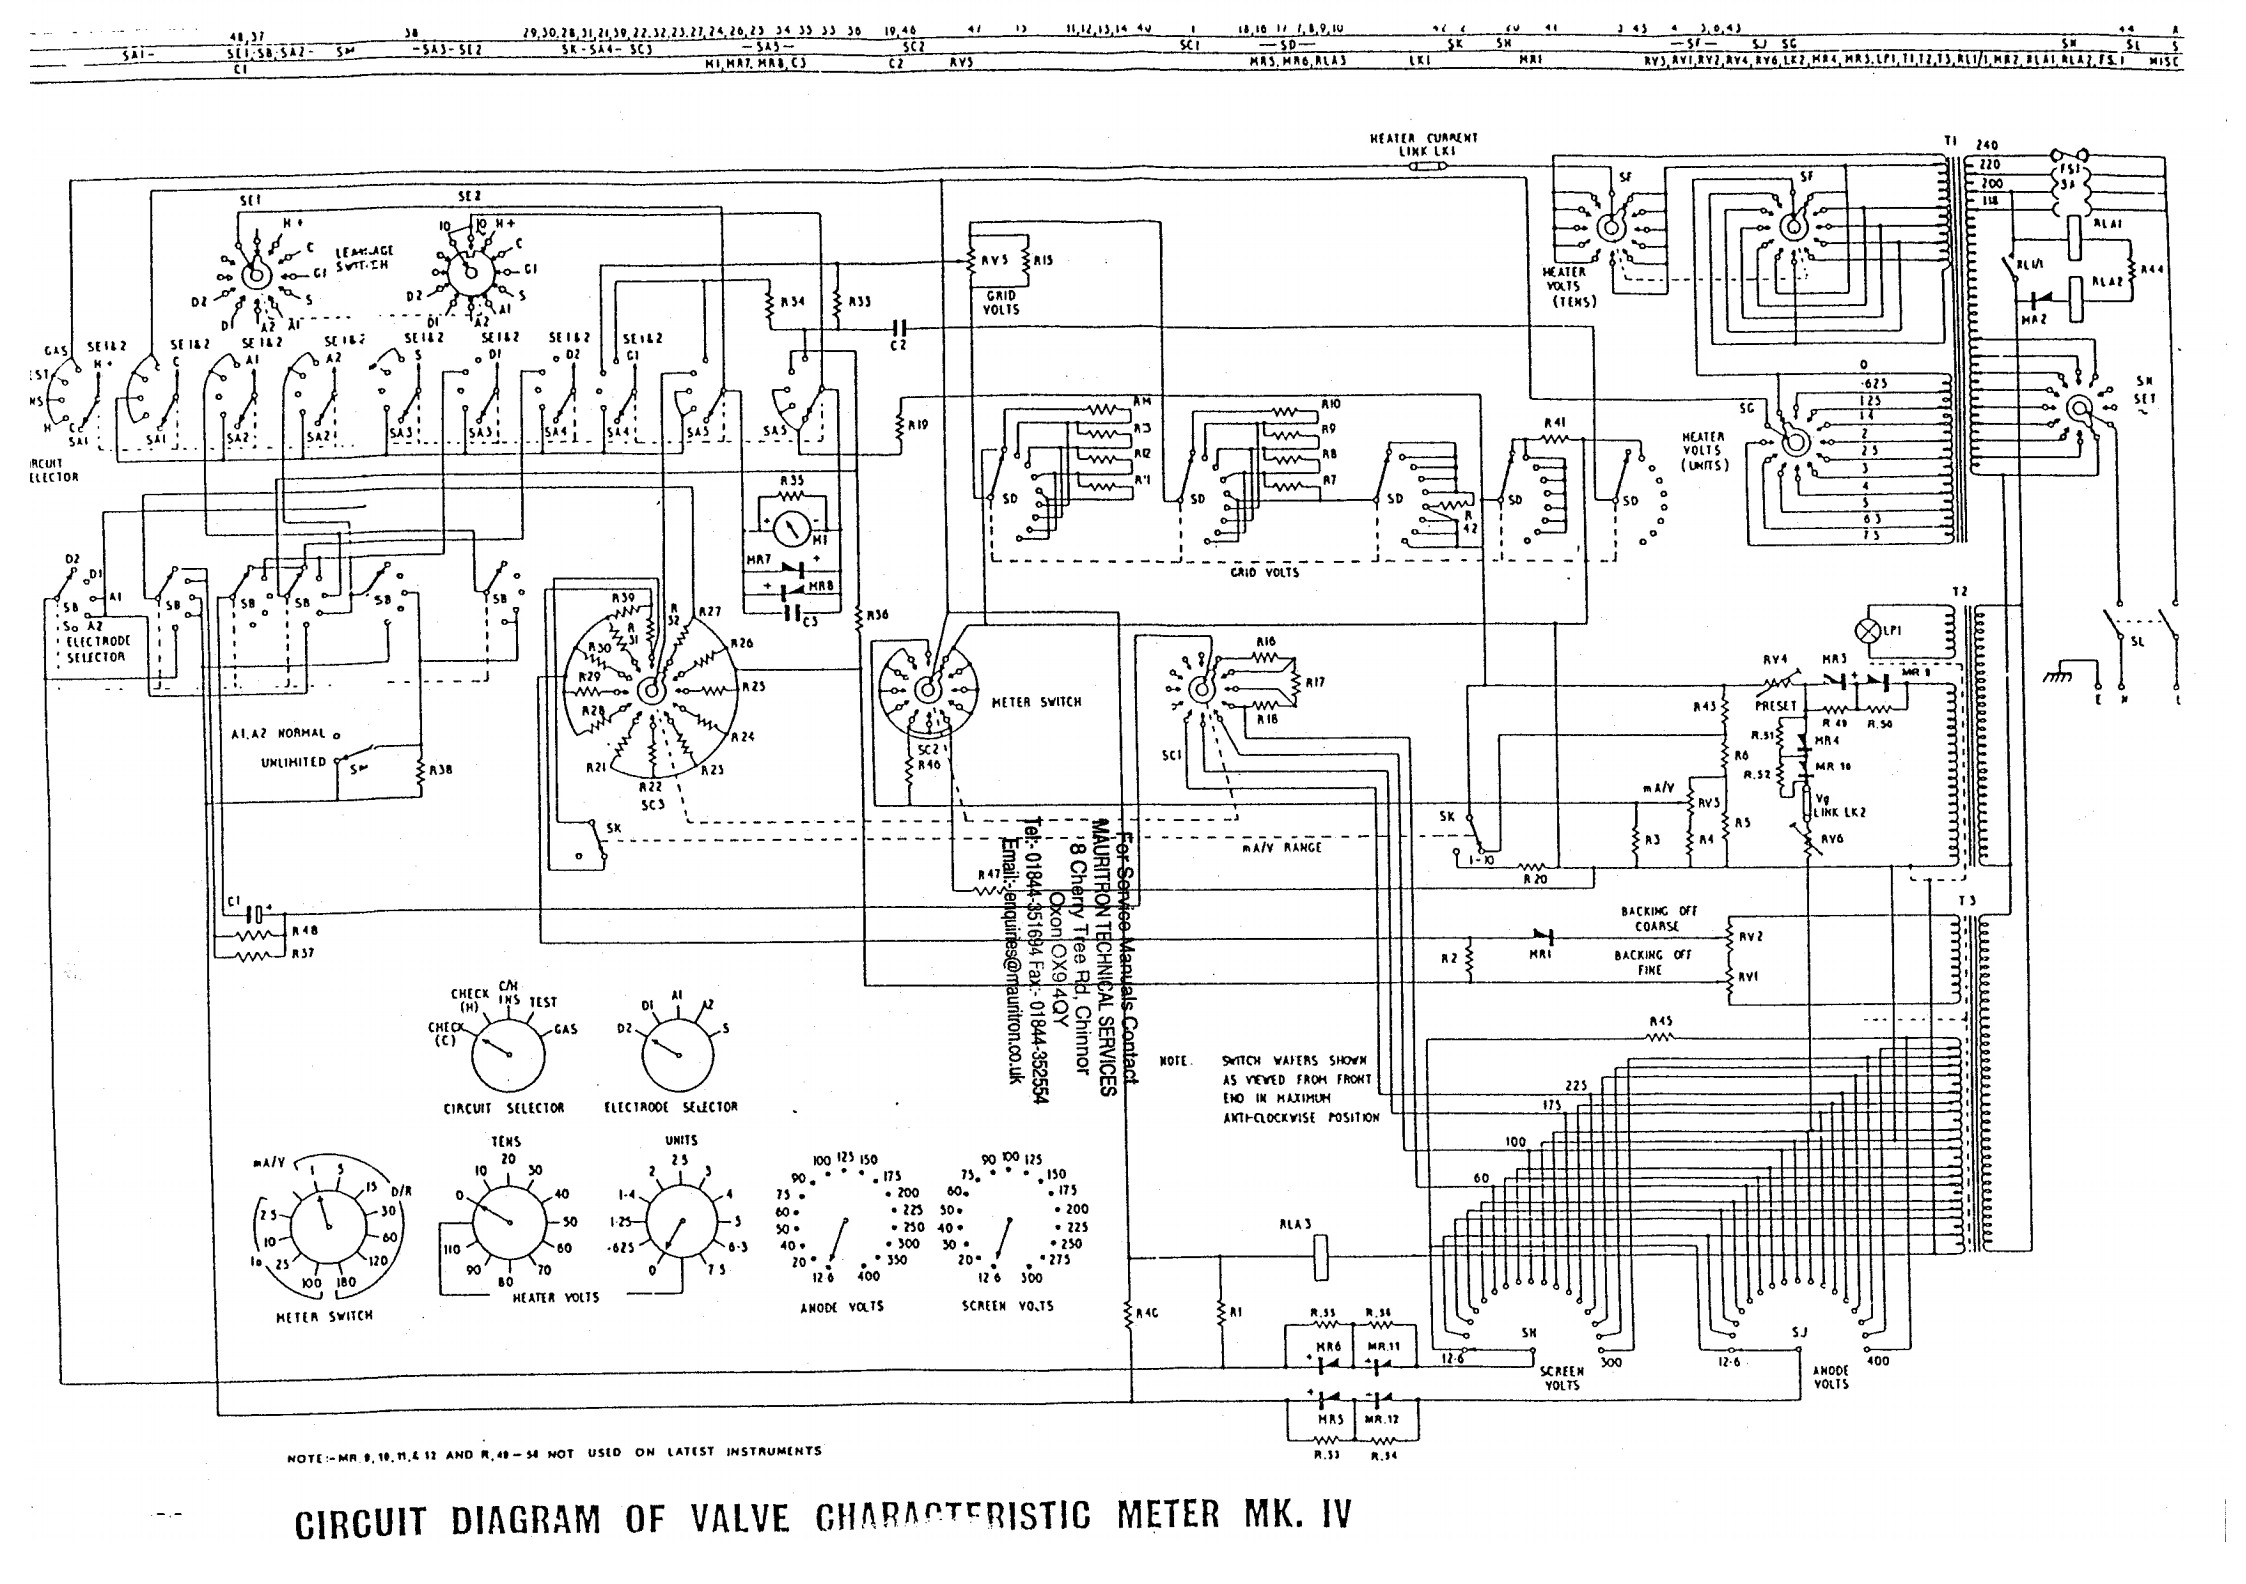 Avo K4 Iv Tube Valve Tester Page With Panel Meter Information Taylor 210e Wiring Diagram Another Schematic It Has Errors